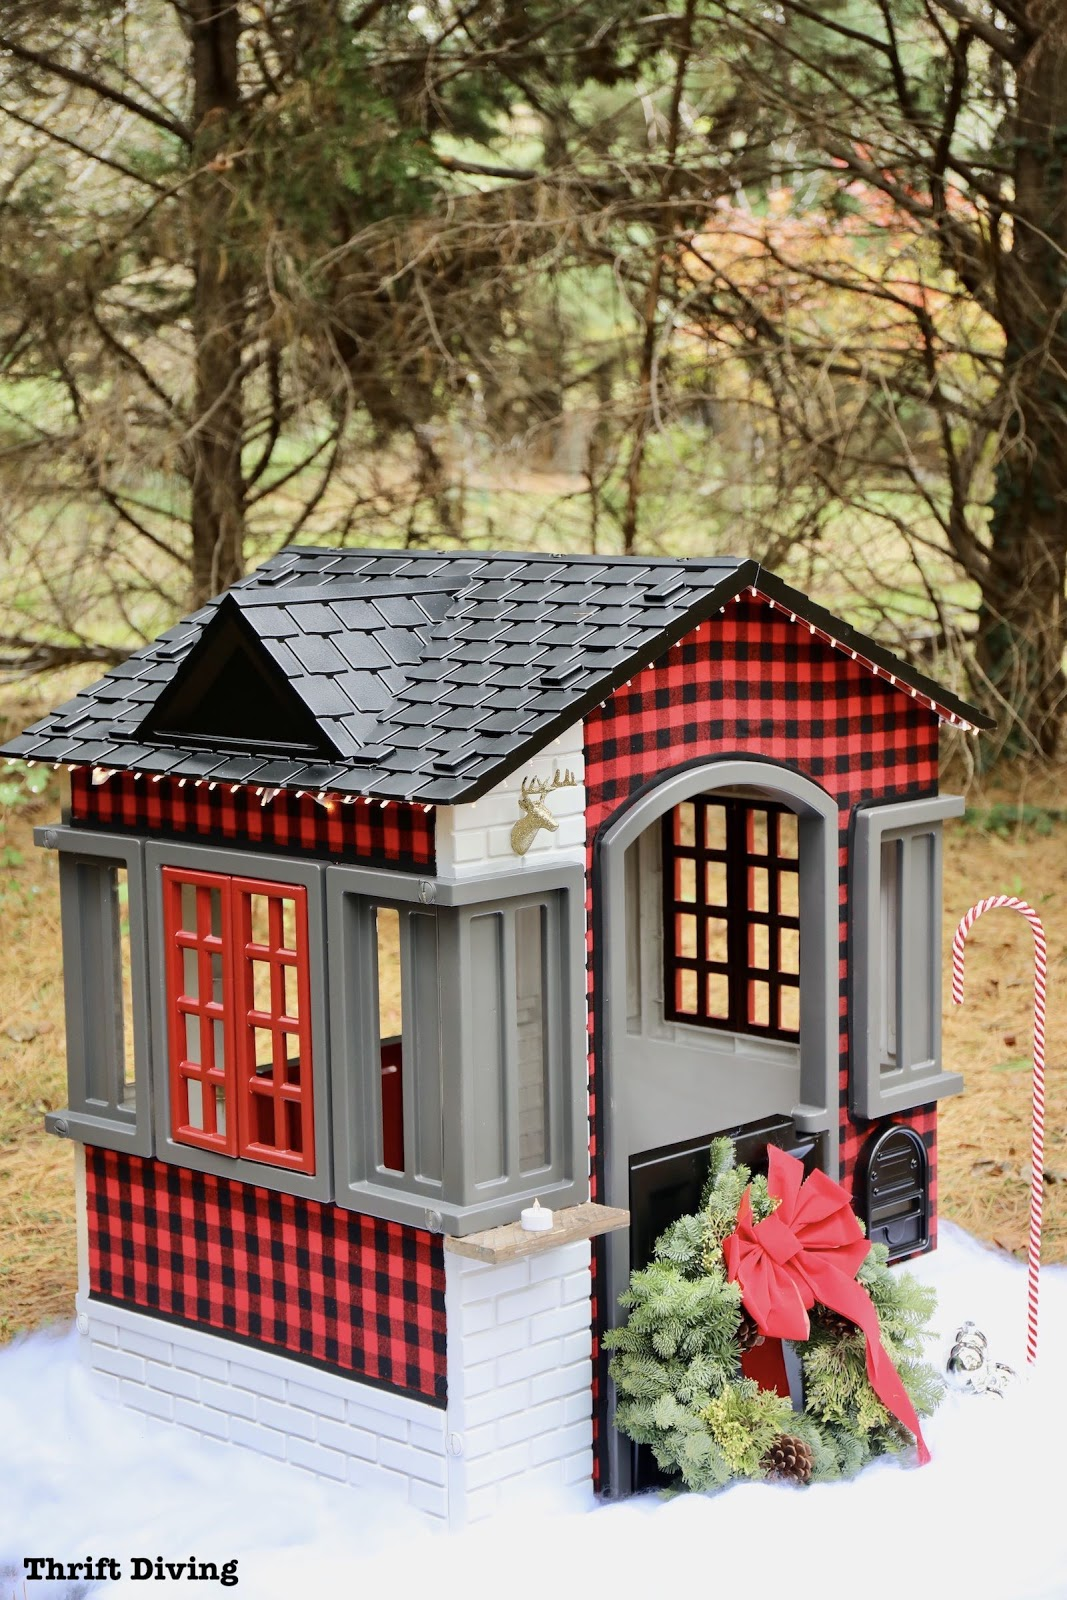 little tikes cape cottage playhouse decorated with flannel fabric, a wreath, and black roof